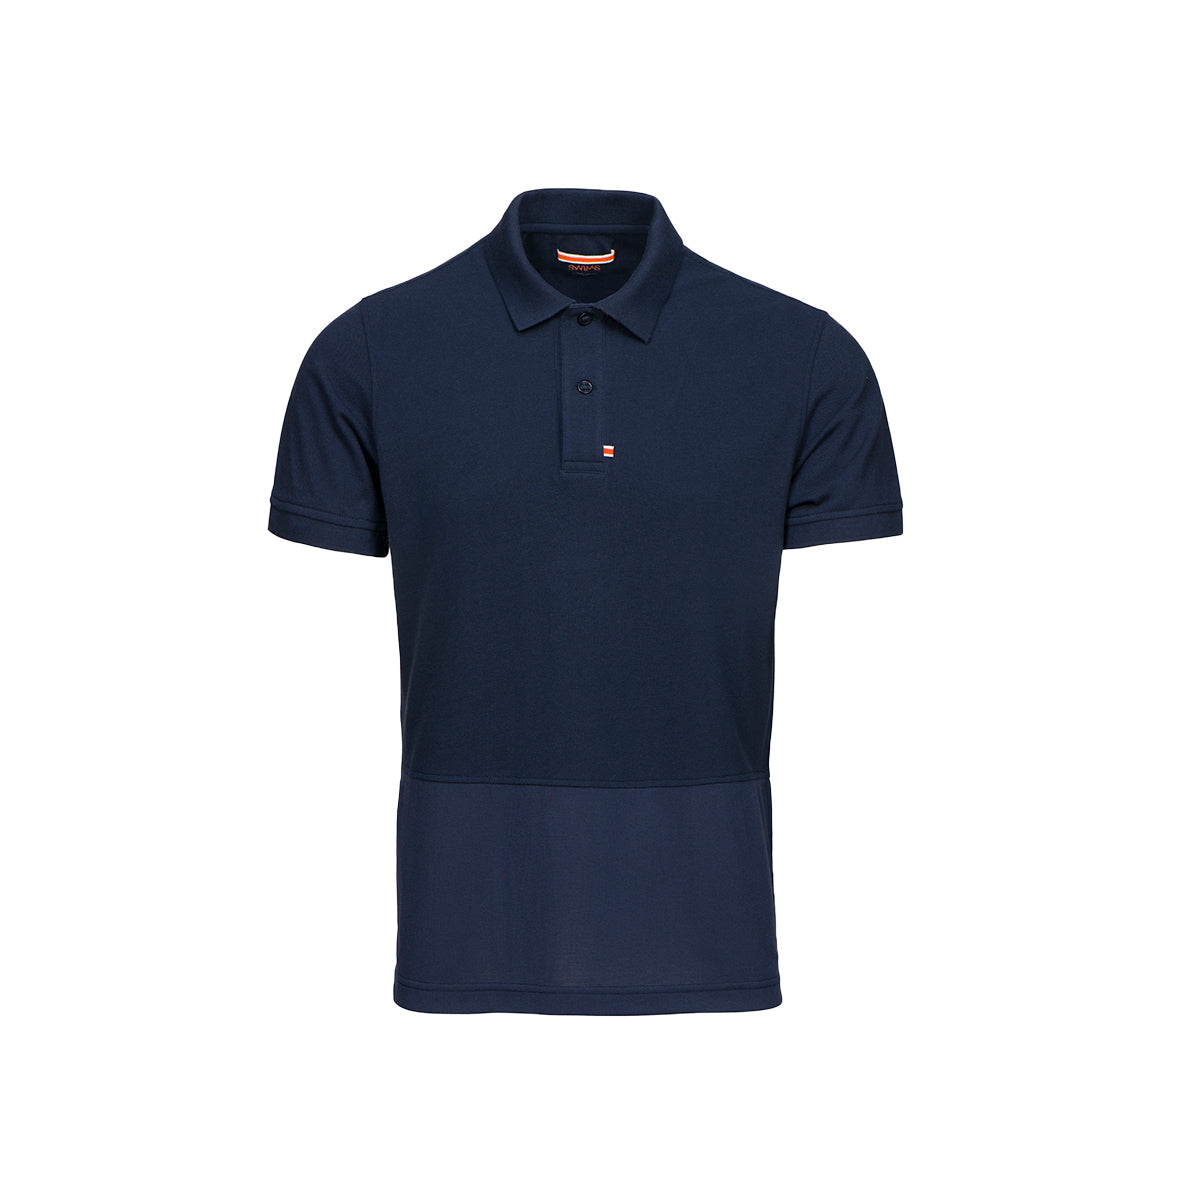 Forno Pique Polo - background::white,variant::navy